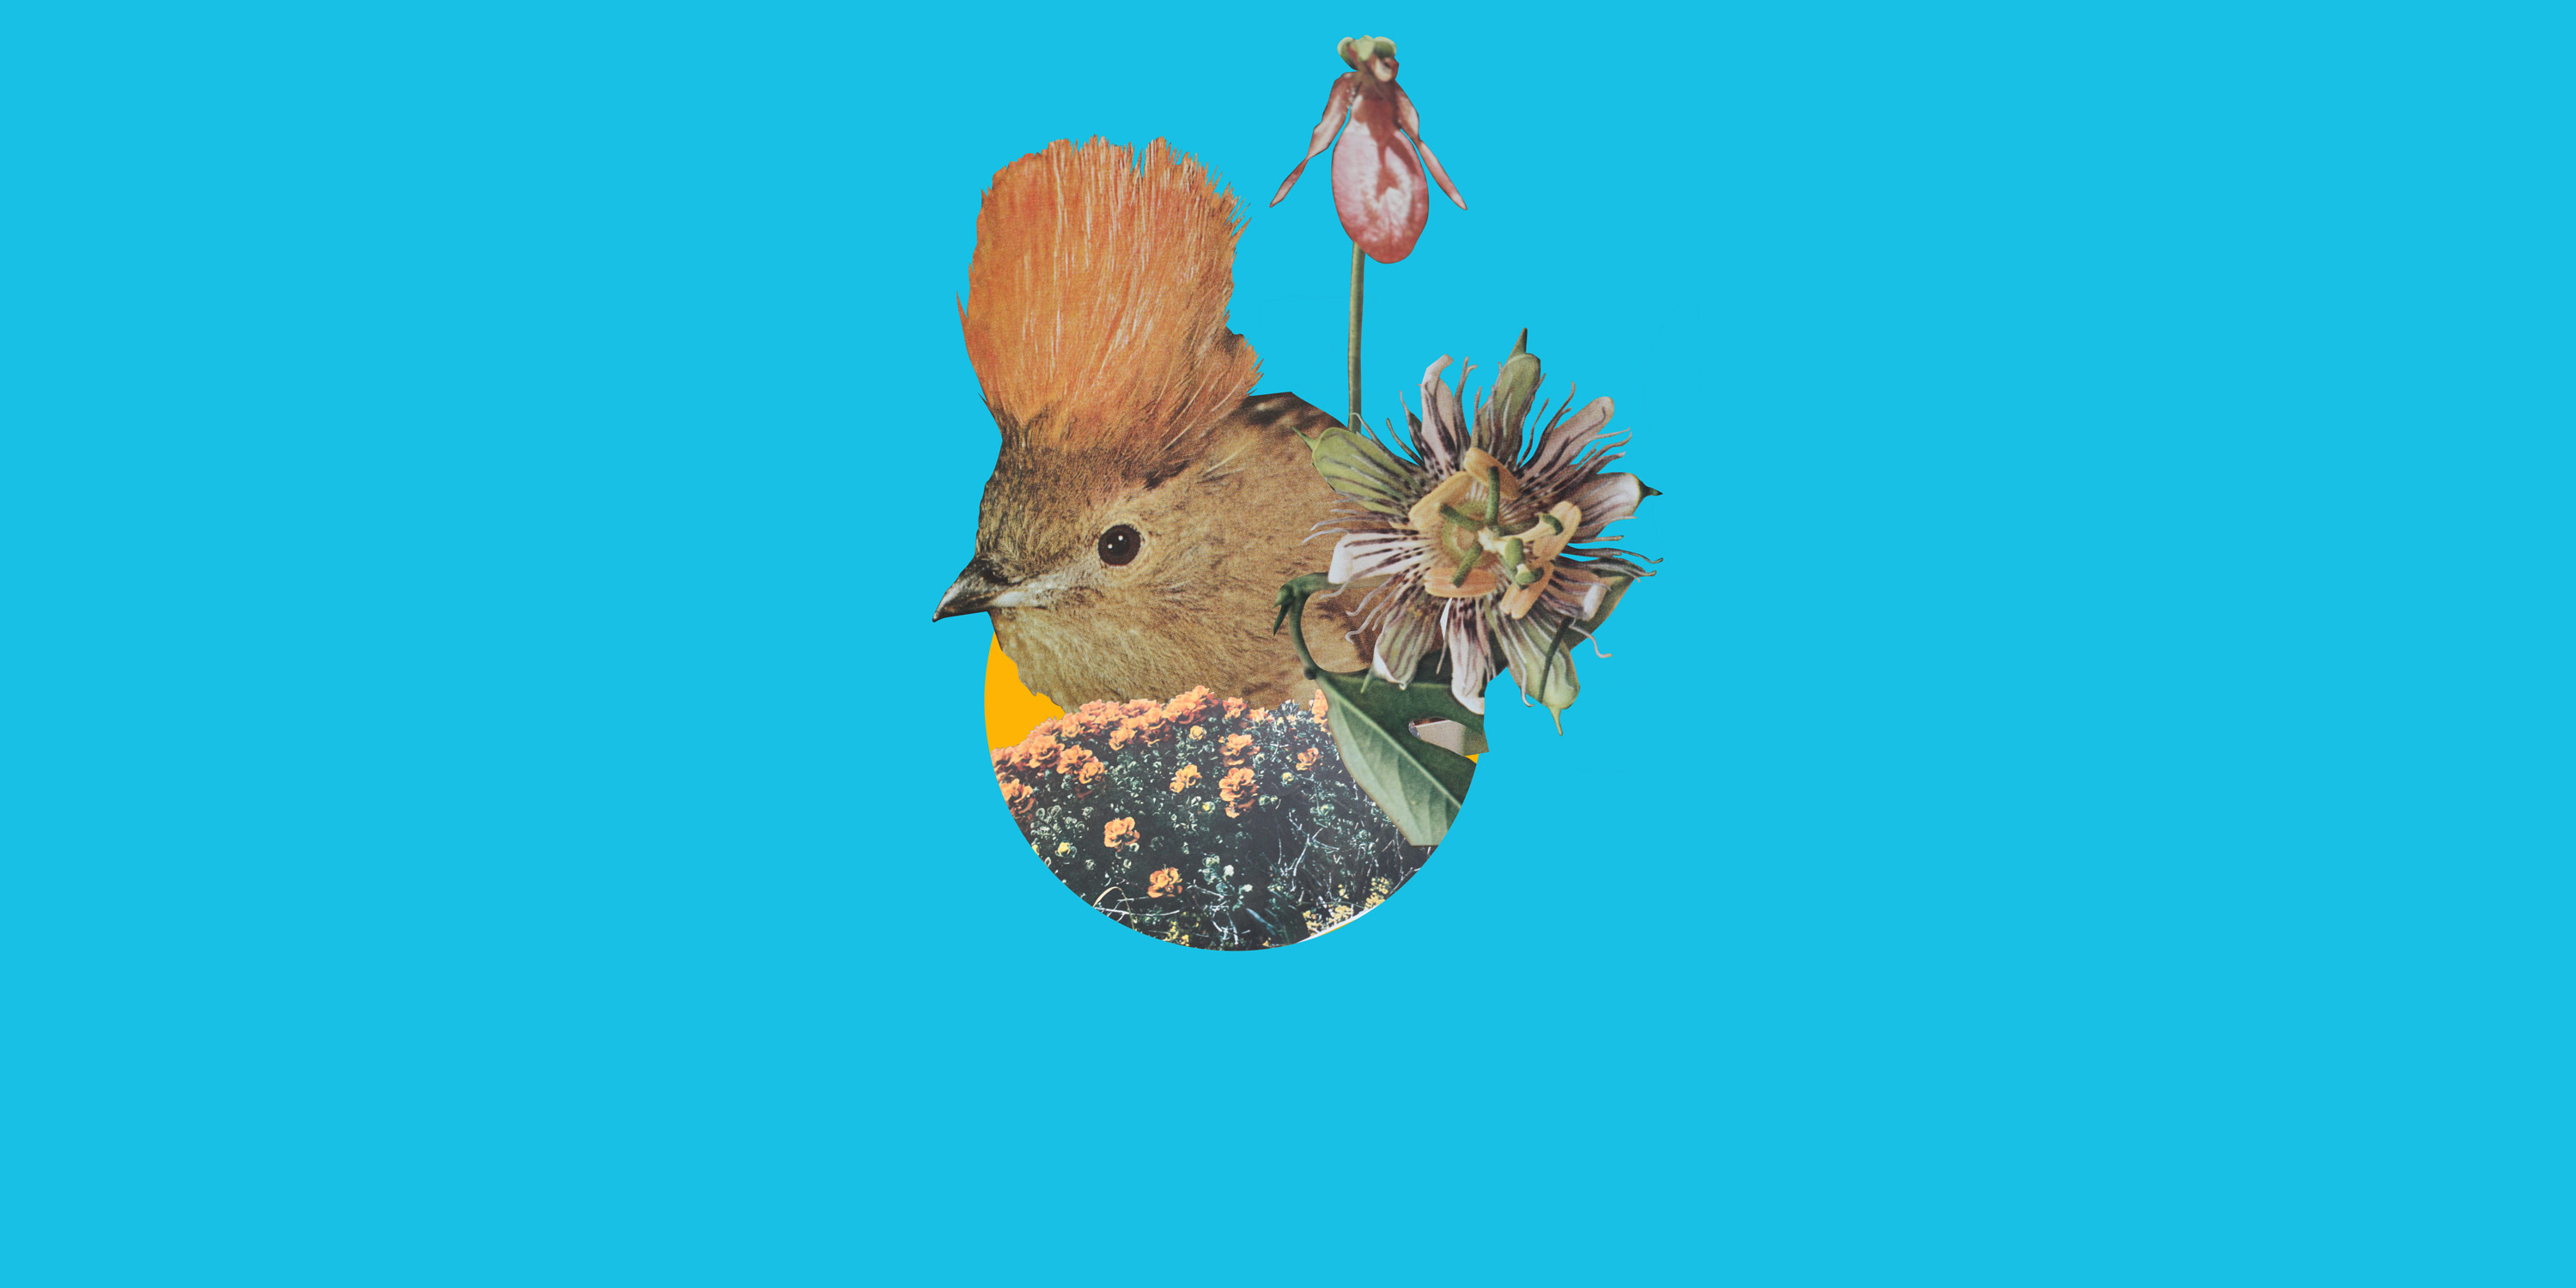 Collage of vintage National Geographic images. Pictured: Bowerbird, passion flower, iris, on blue background.